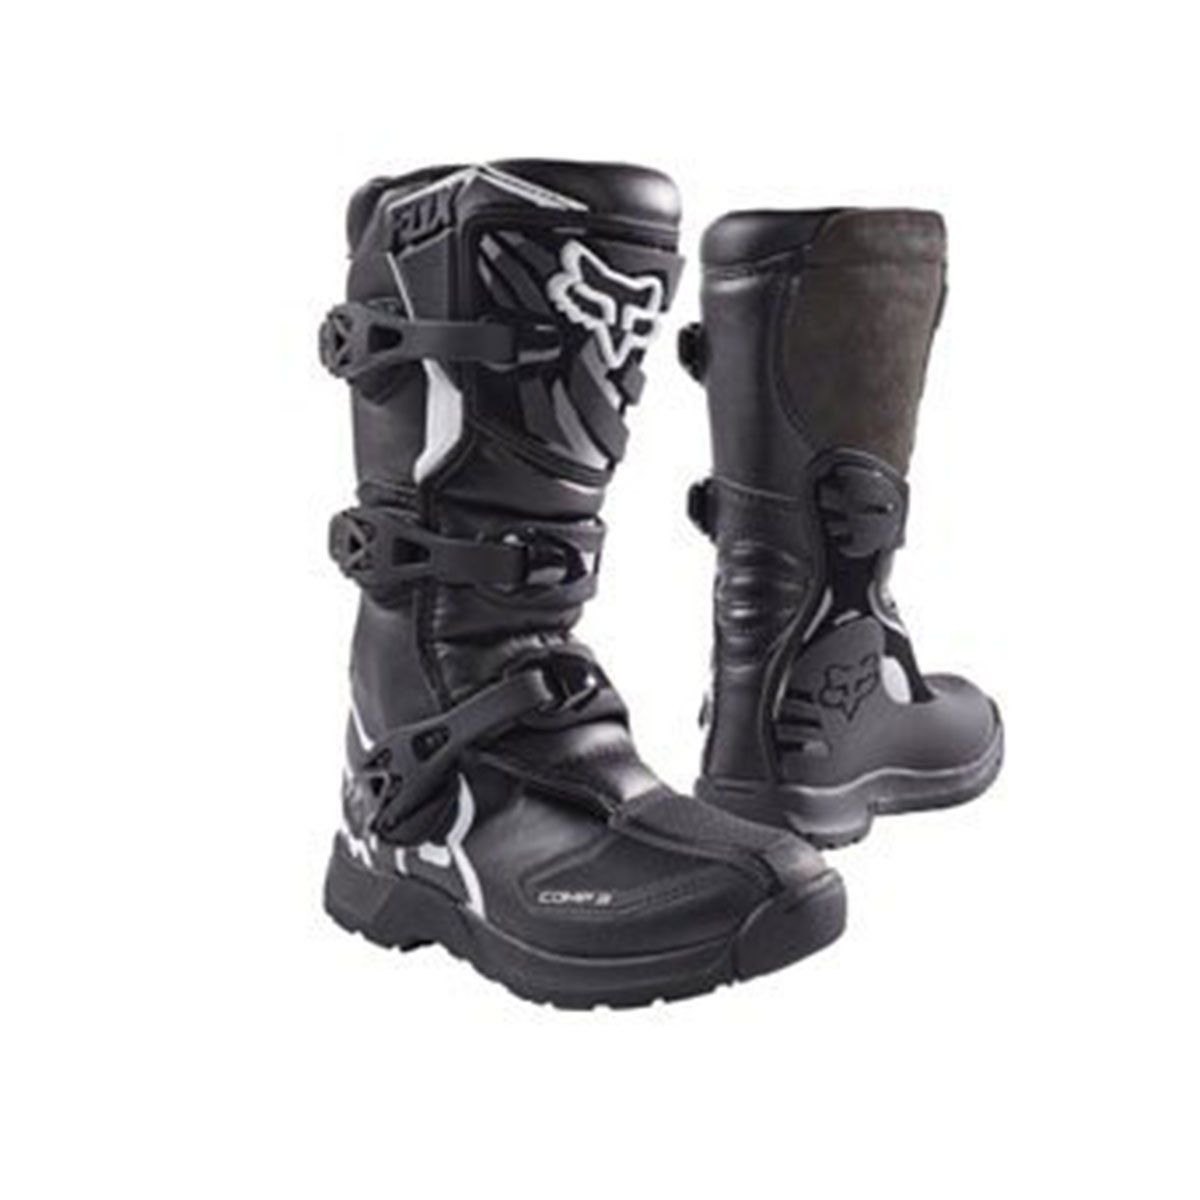 Bota de Motocross Fox Comp P3 Youth 17 Preto